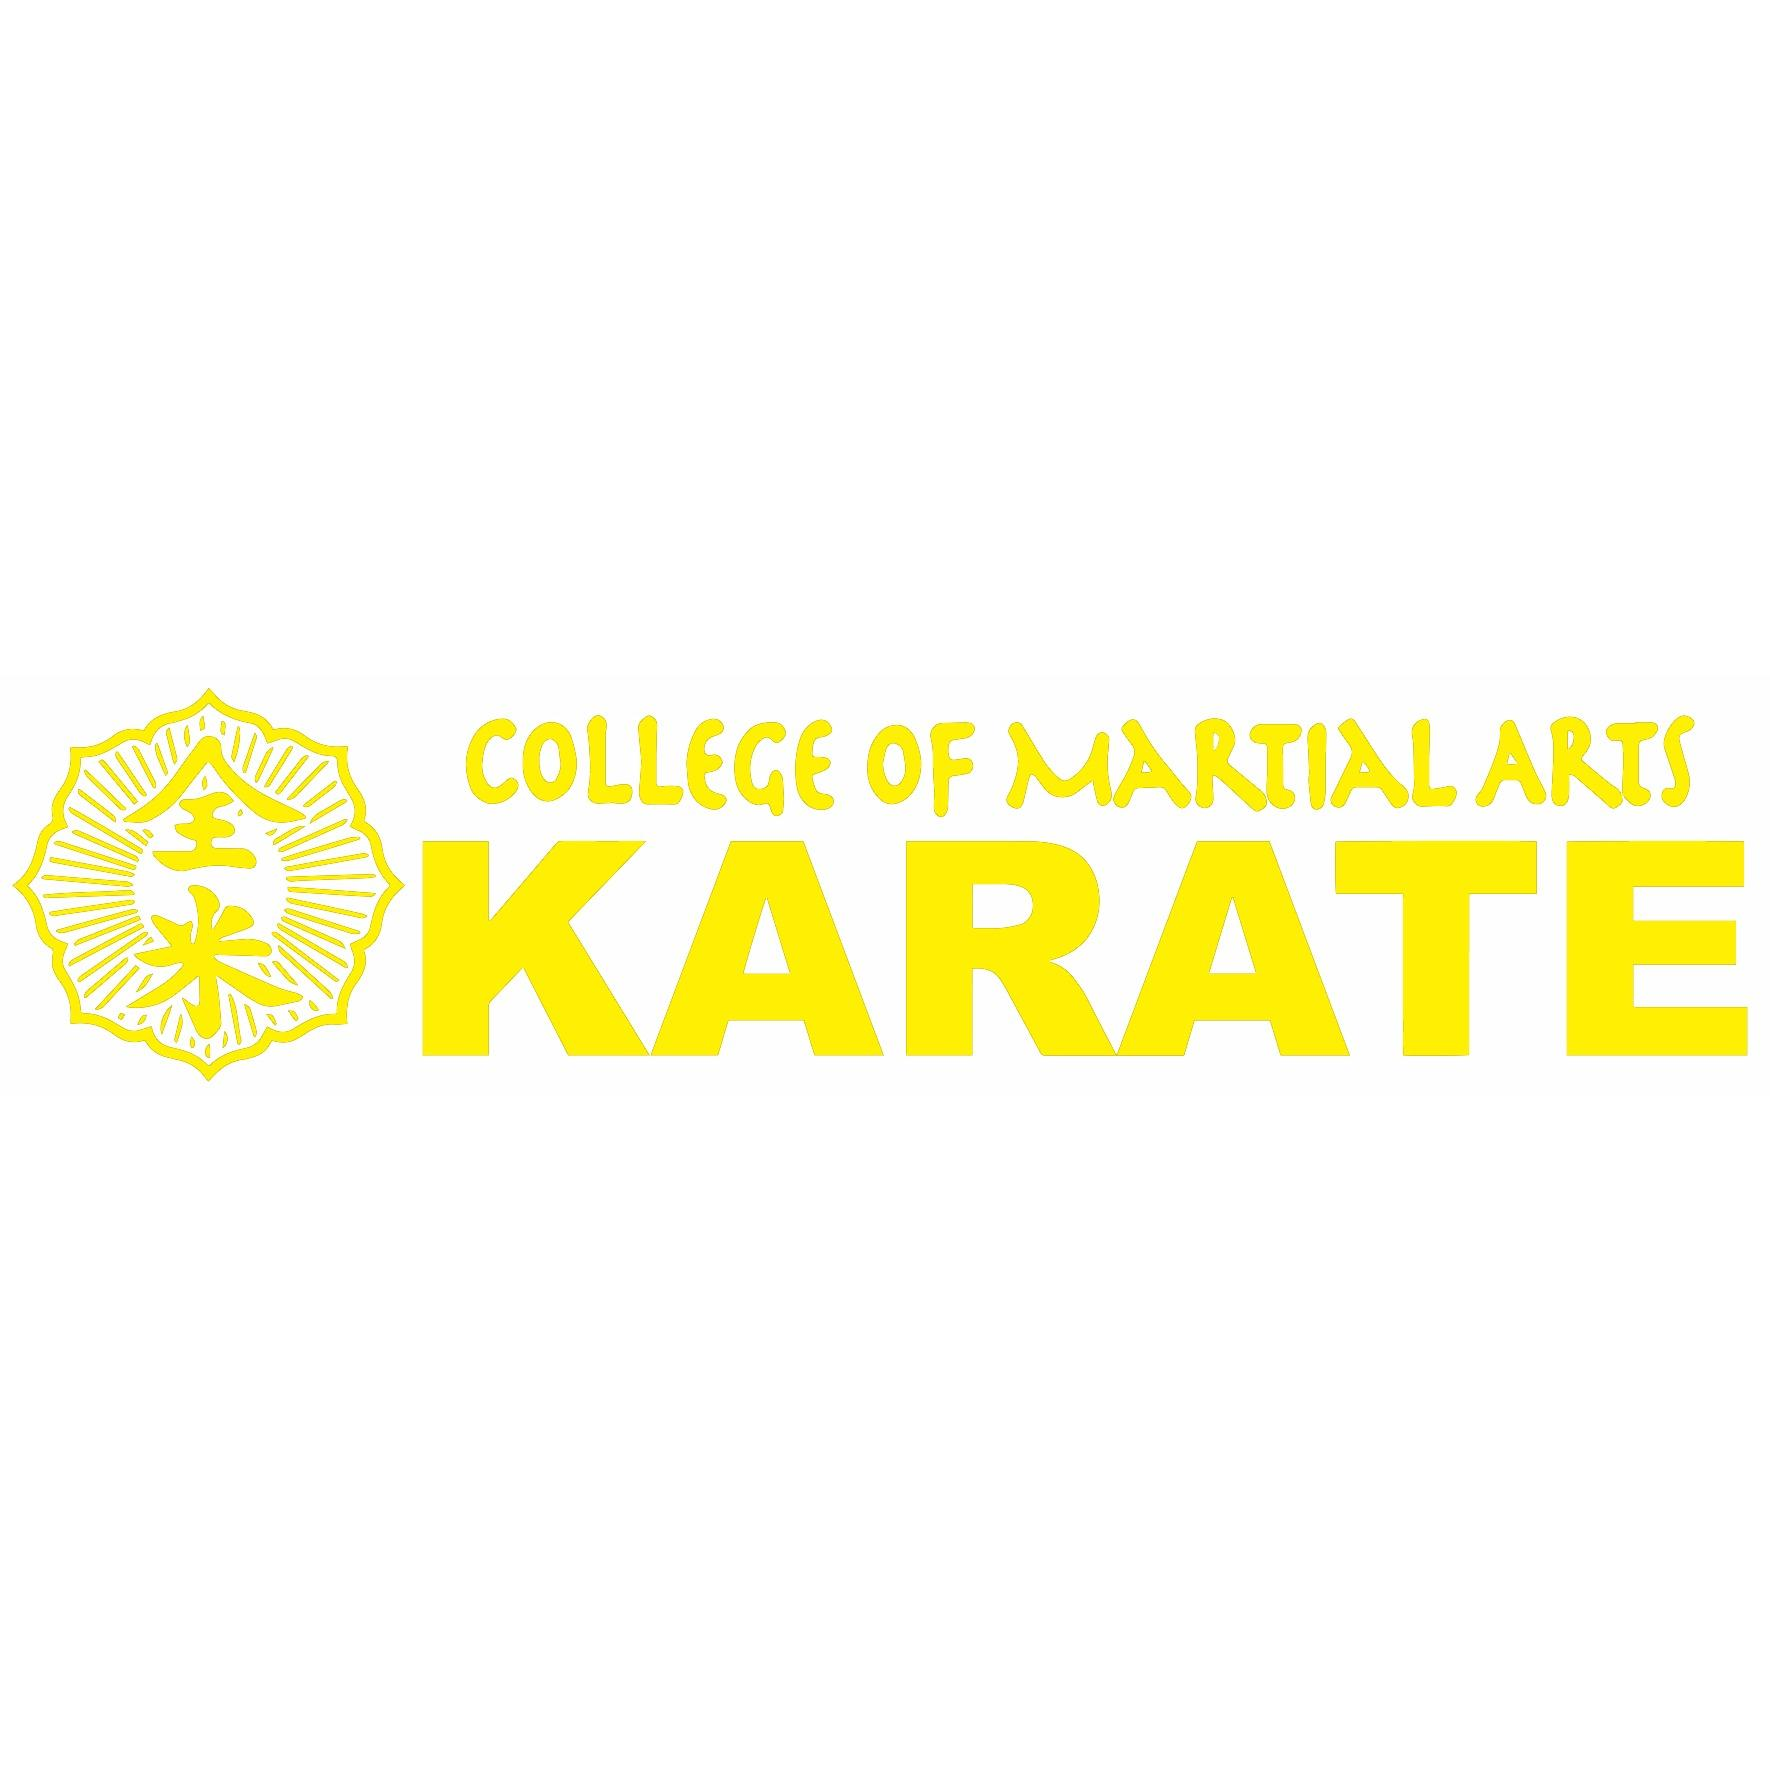 College of Martial Arts image 5